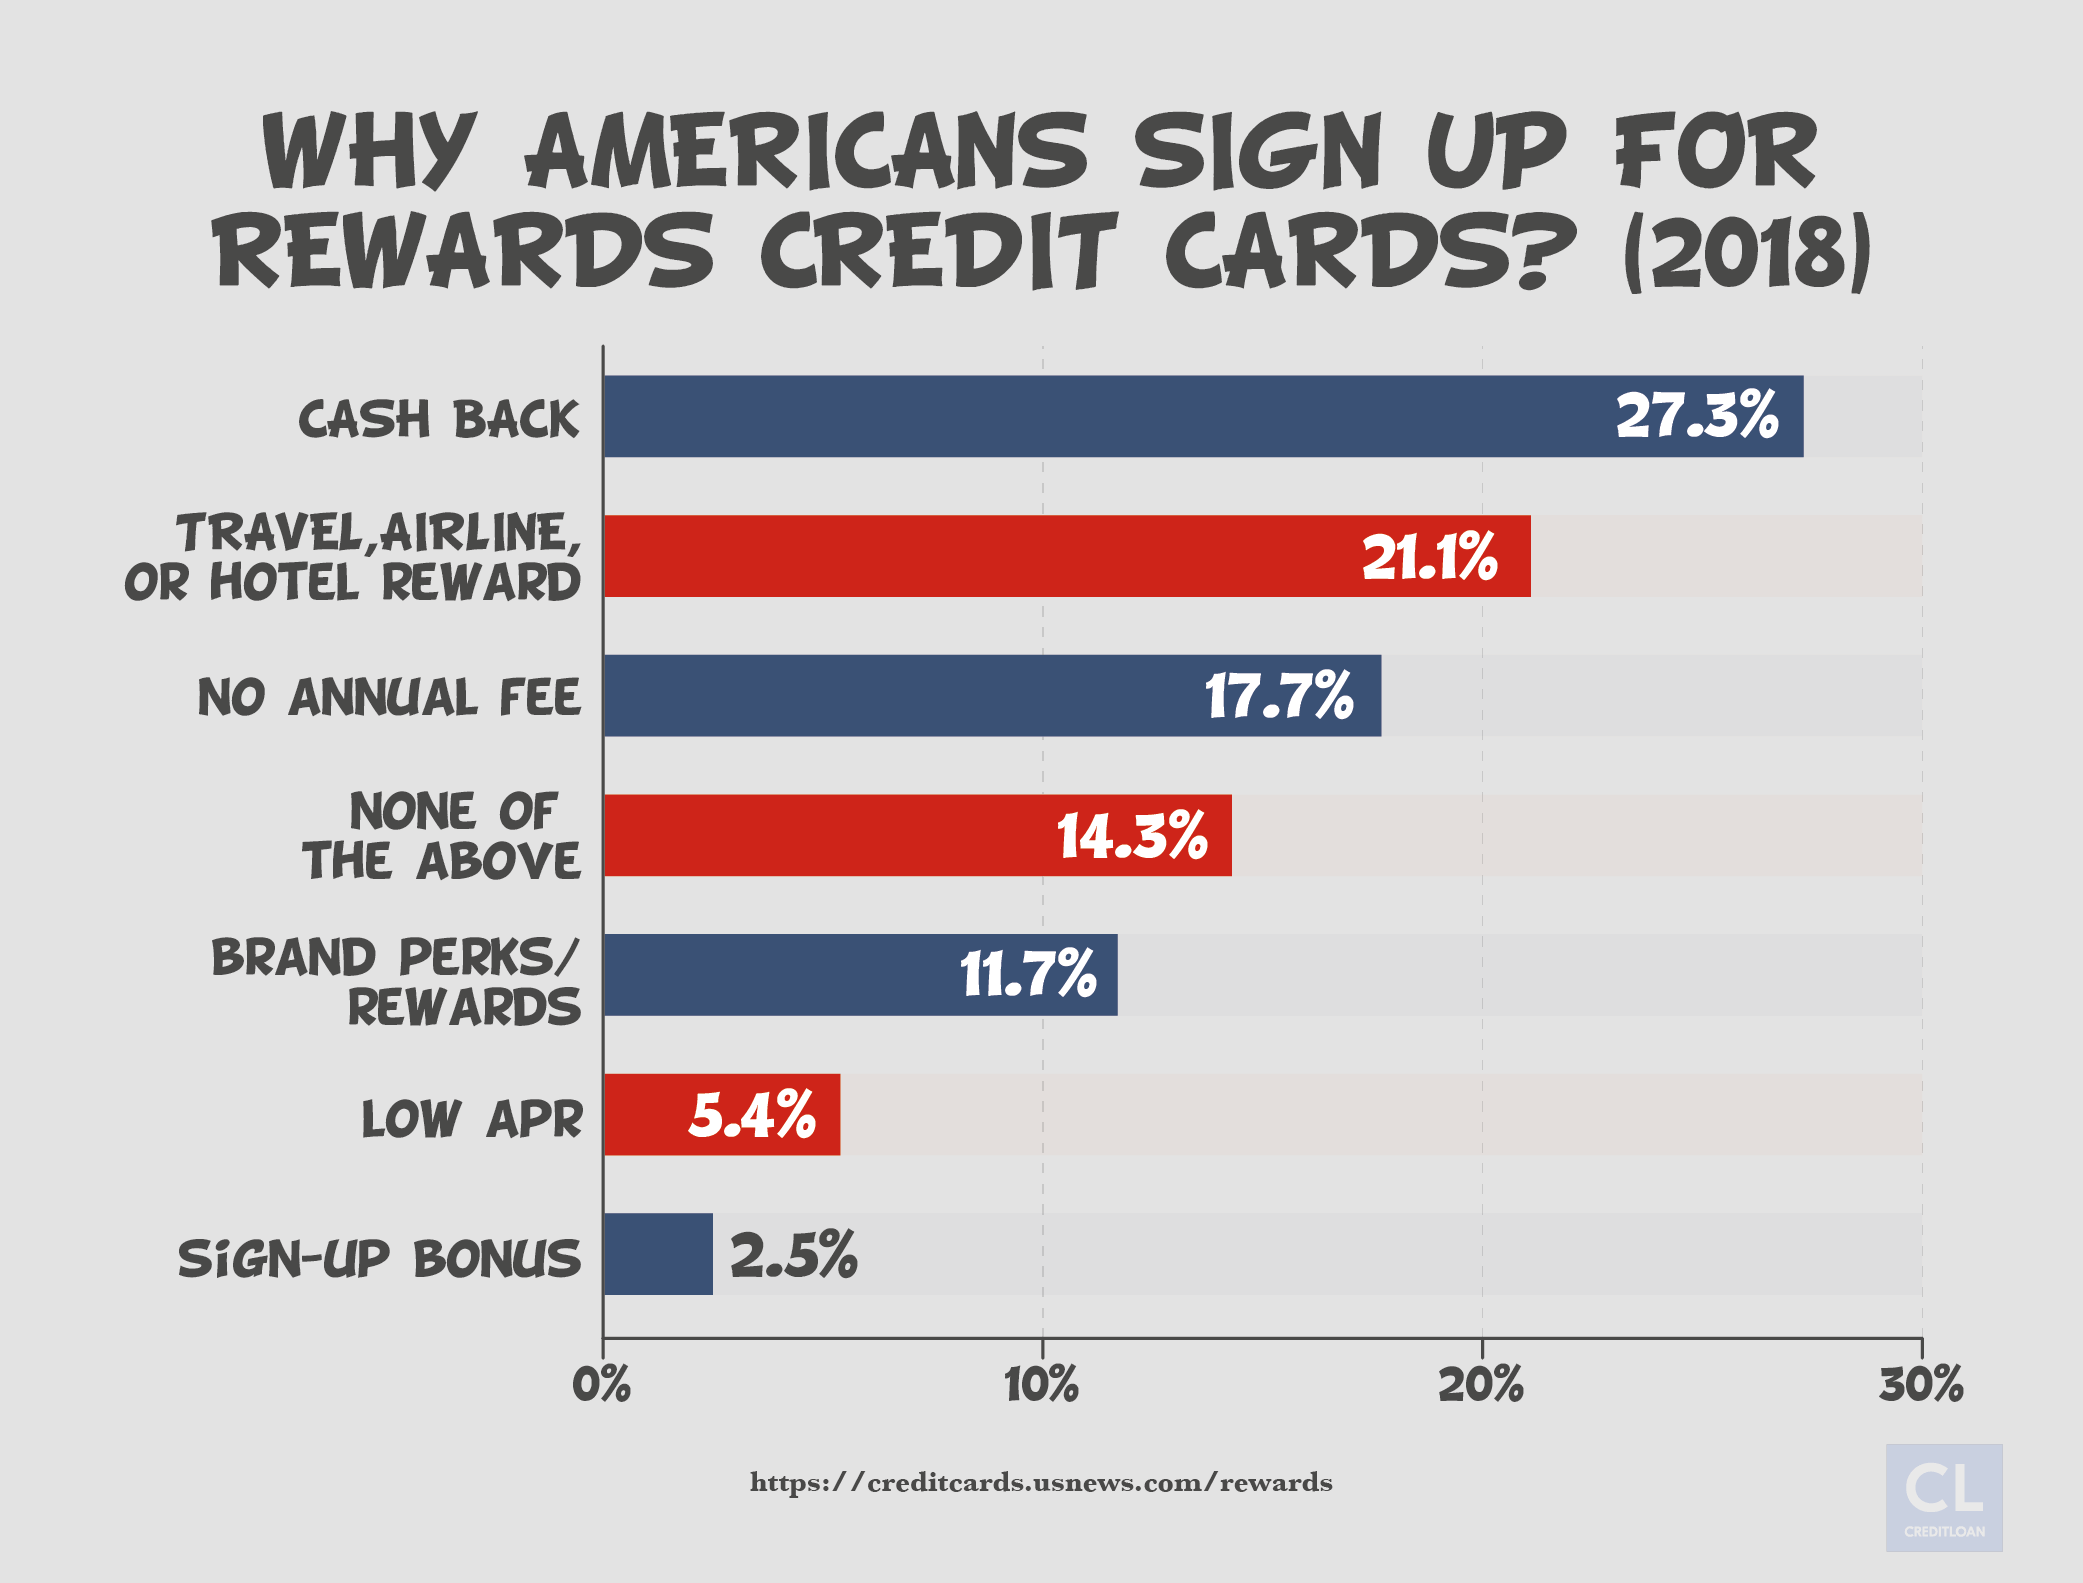 Data Showing Why Americans Sign Up For Reward Credit Cards